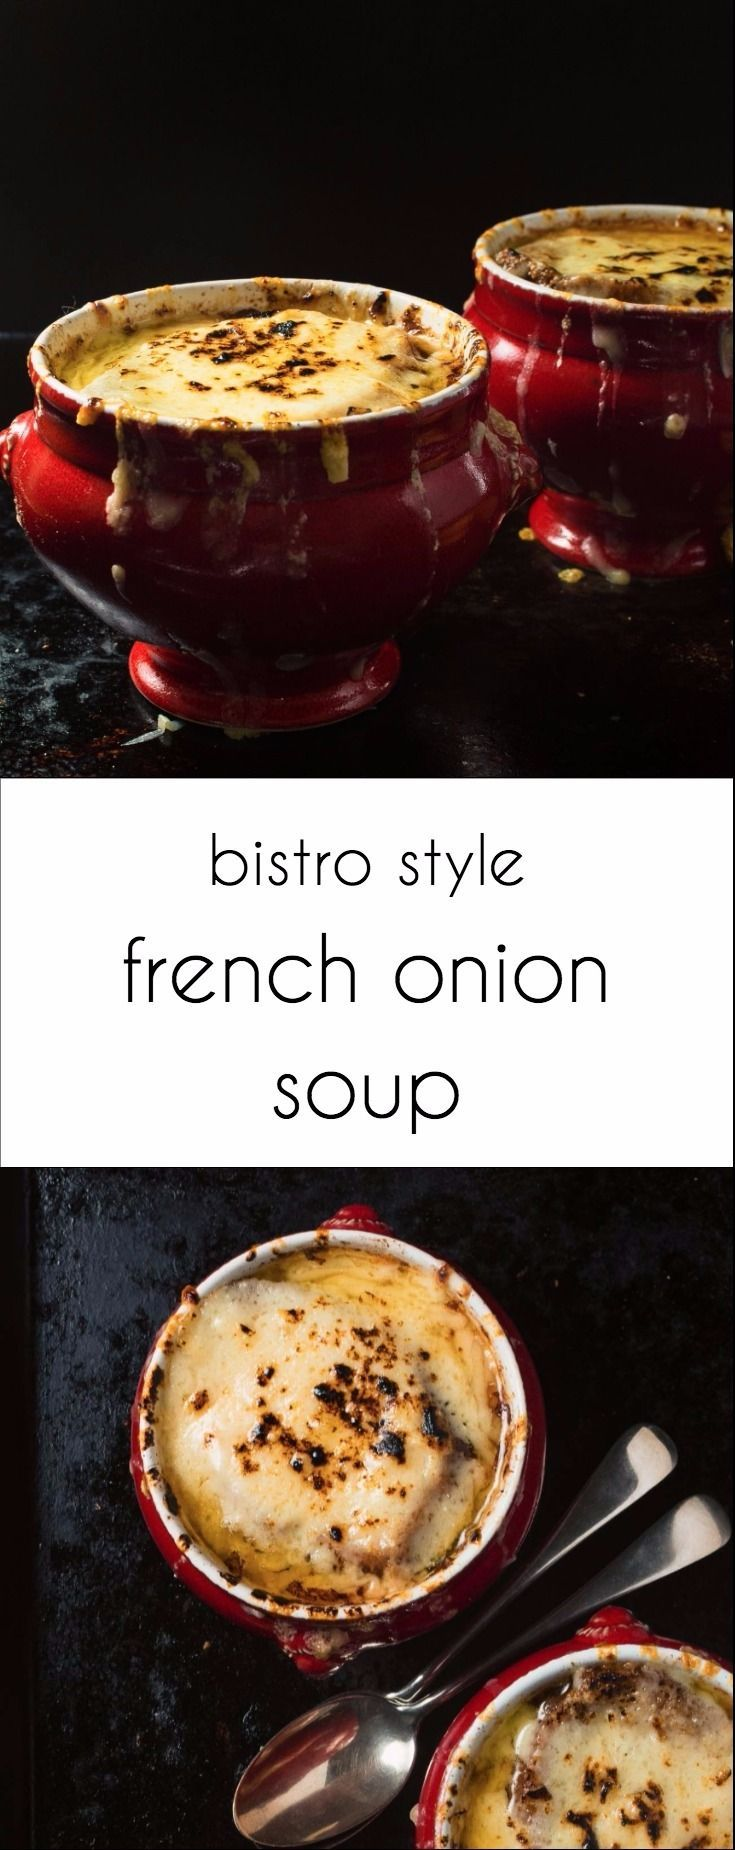 Warm up with this bistro style French onion soup. Comfort in a bowl!